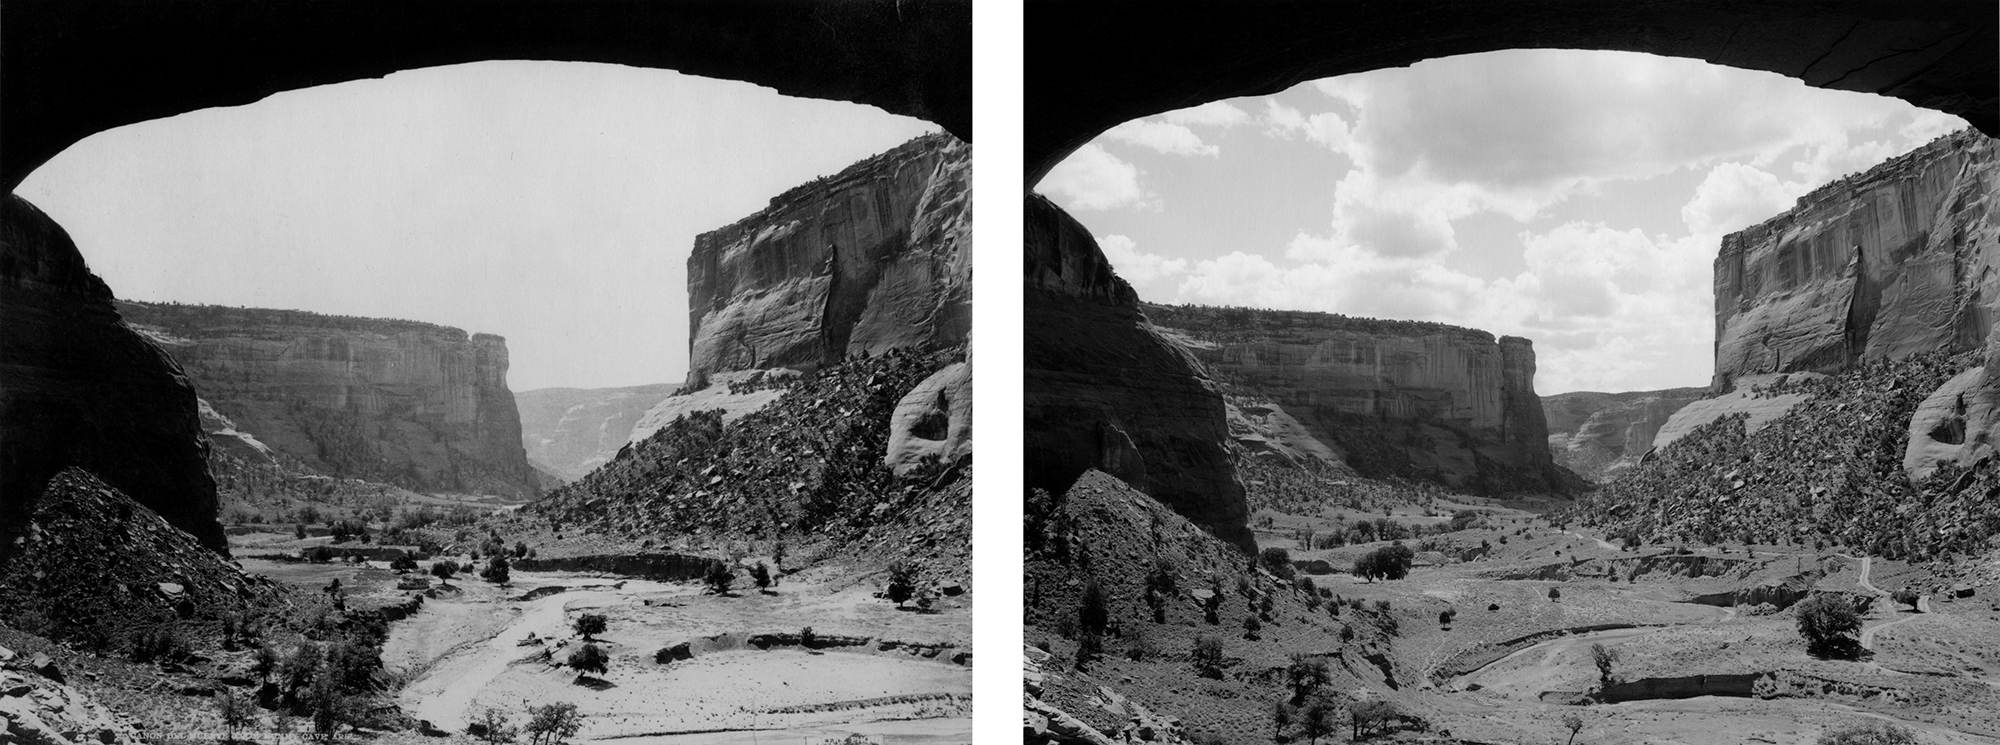 LEFT: J.K. Hillers, Cañon del Muerto from Mummy Cave, N.D. RIGHT: Mark Klett for the Rephotographic Survey Project, Canyon del Muerto, Canyon de Chelly National Monument, AZ, 1978